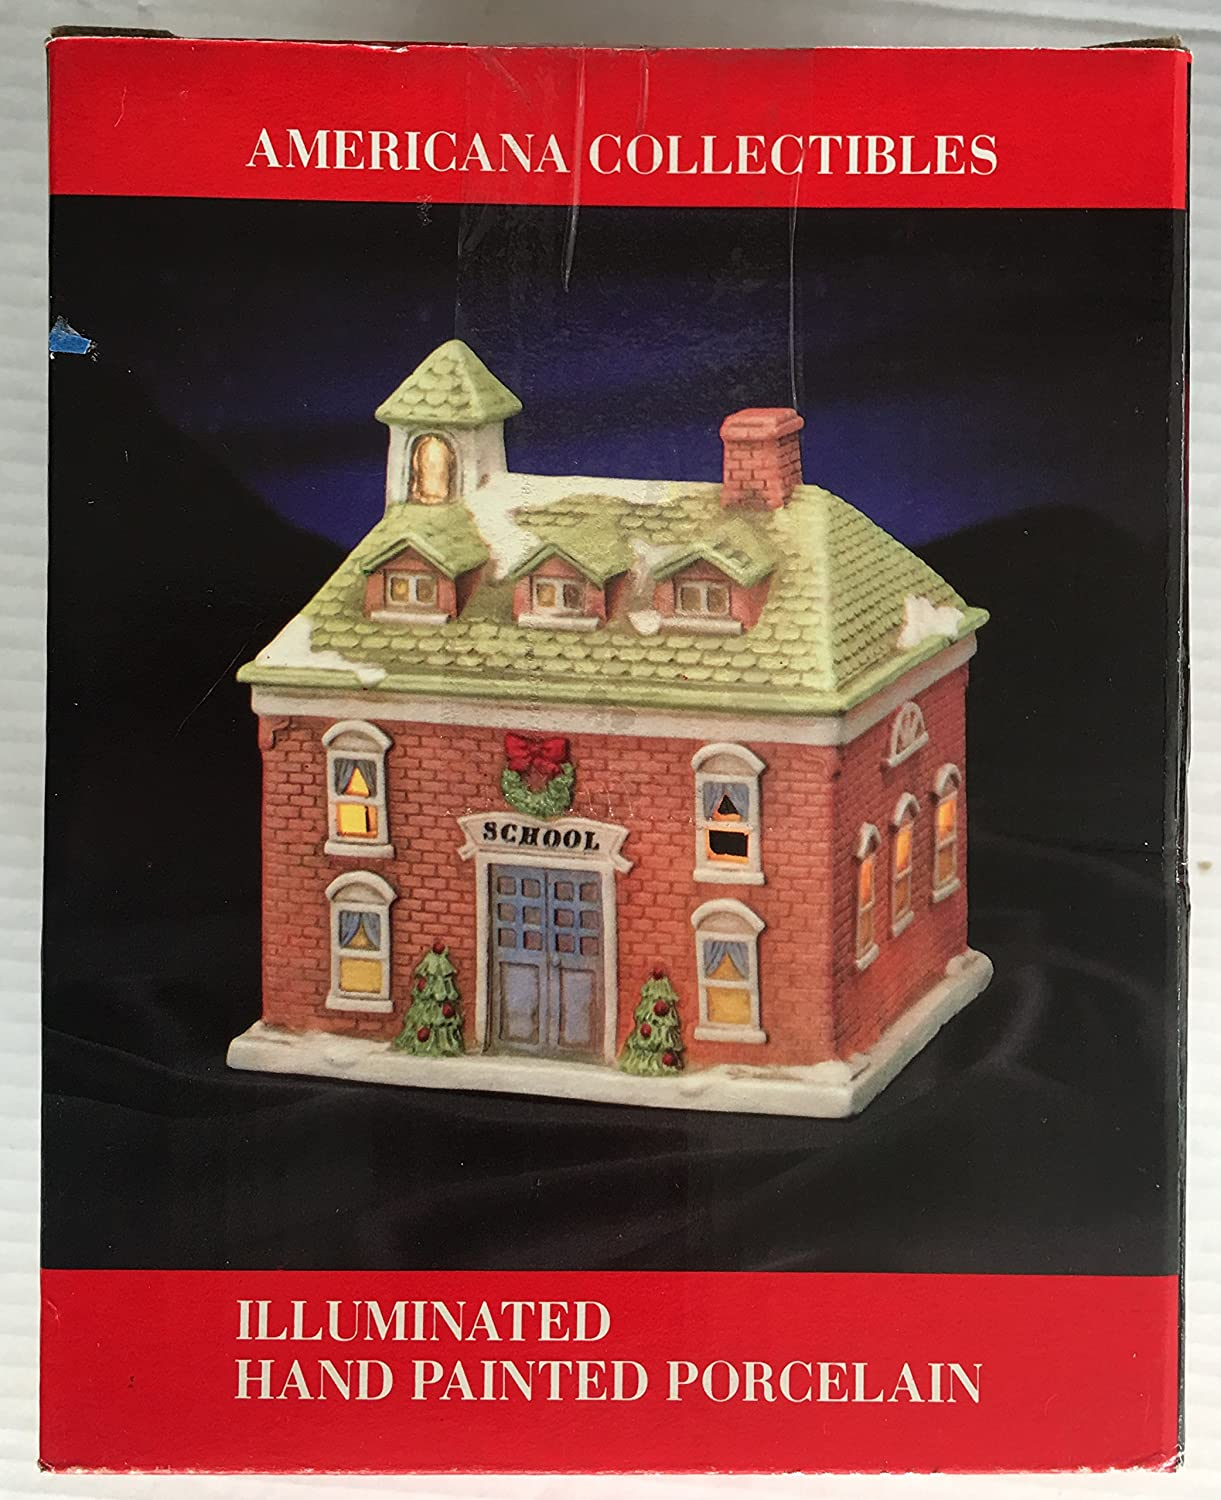 Christmas Hand Painted Porcelain School Illuminated Building Americana Collectibles